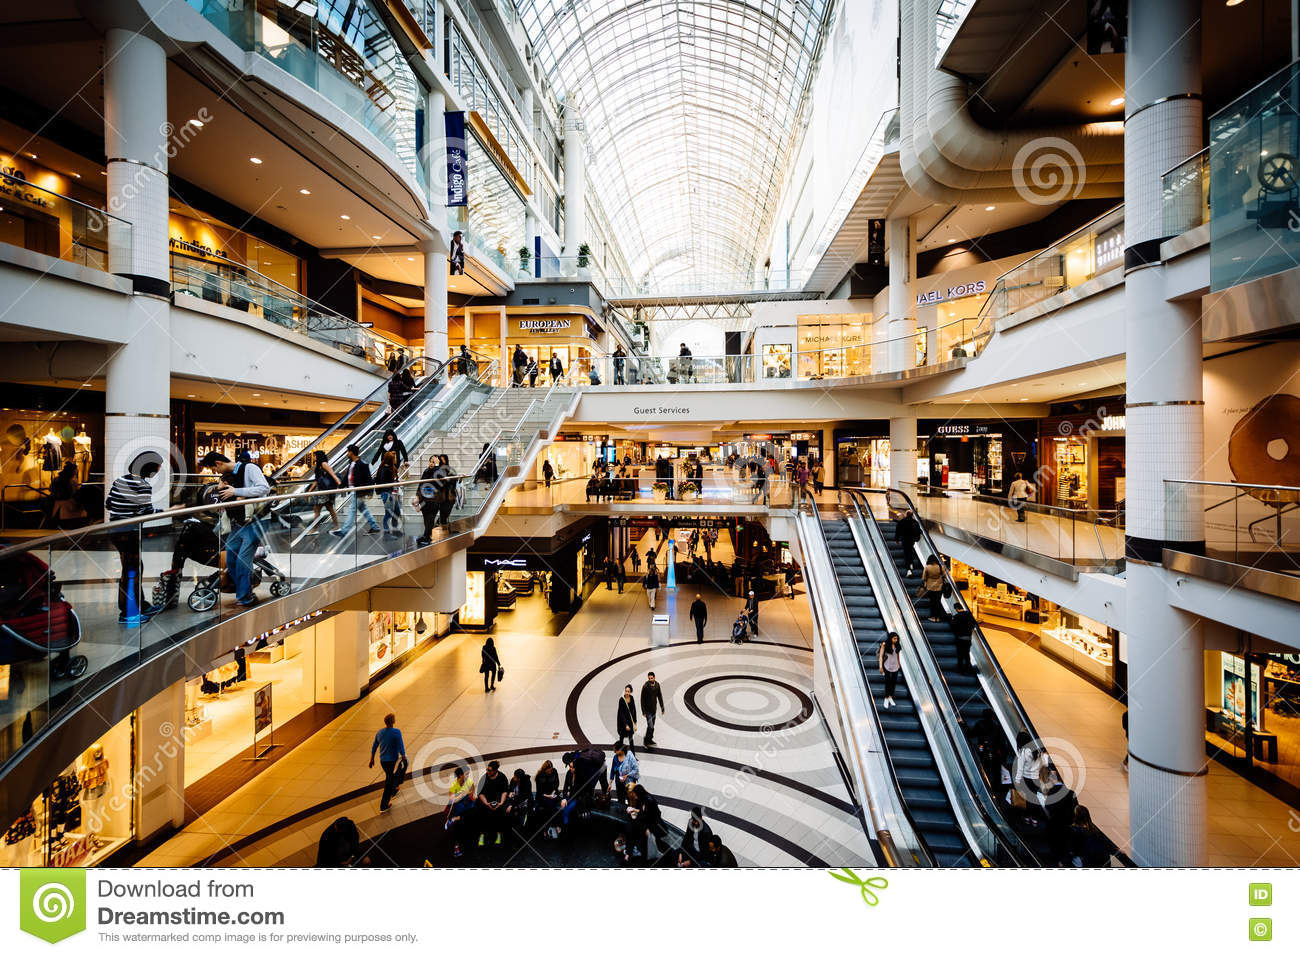 The interior of the Eaton Centre, in downtown Toronto, Ontario.